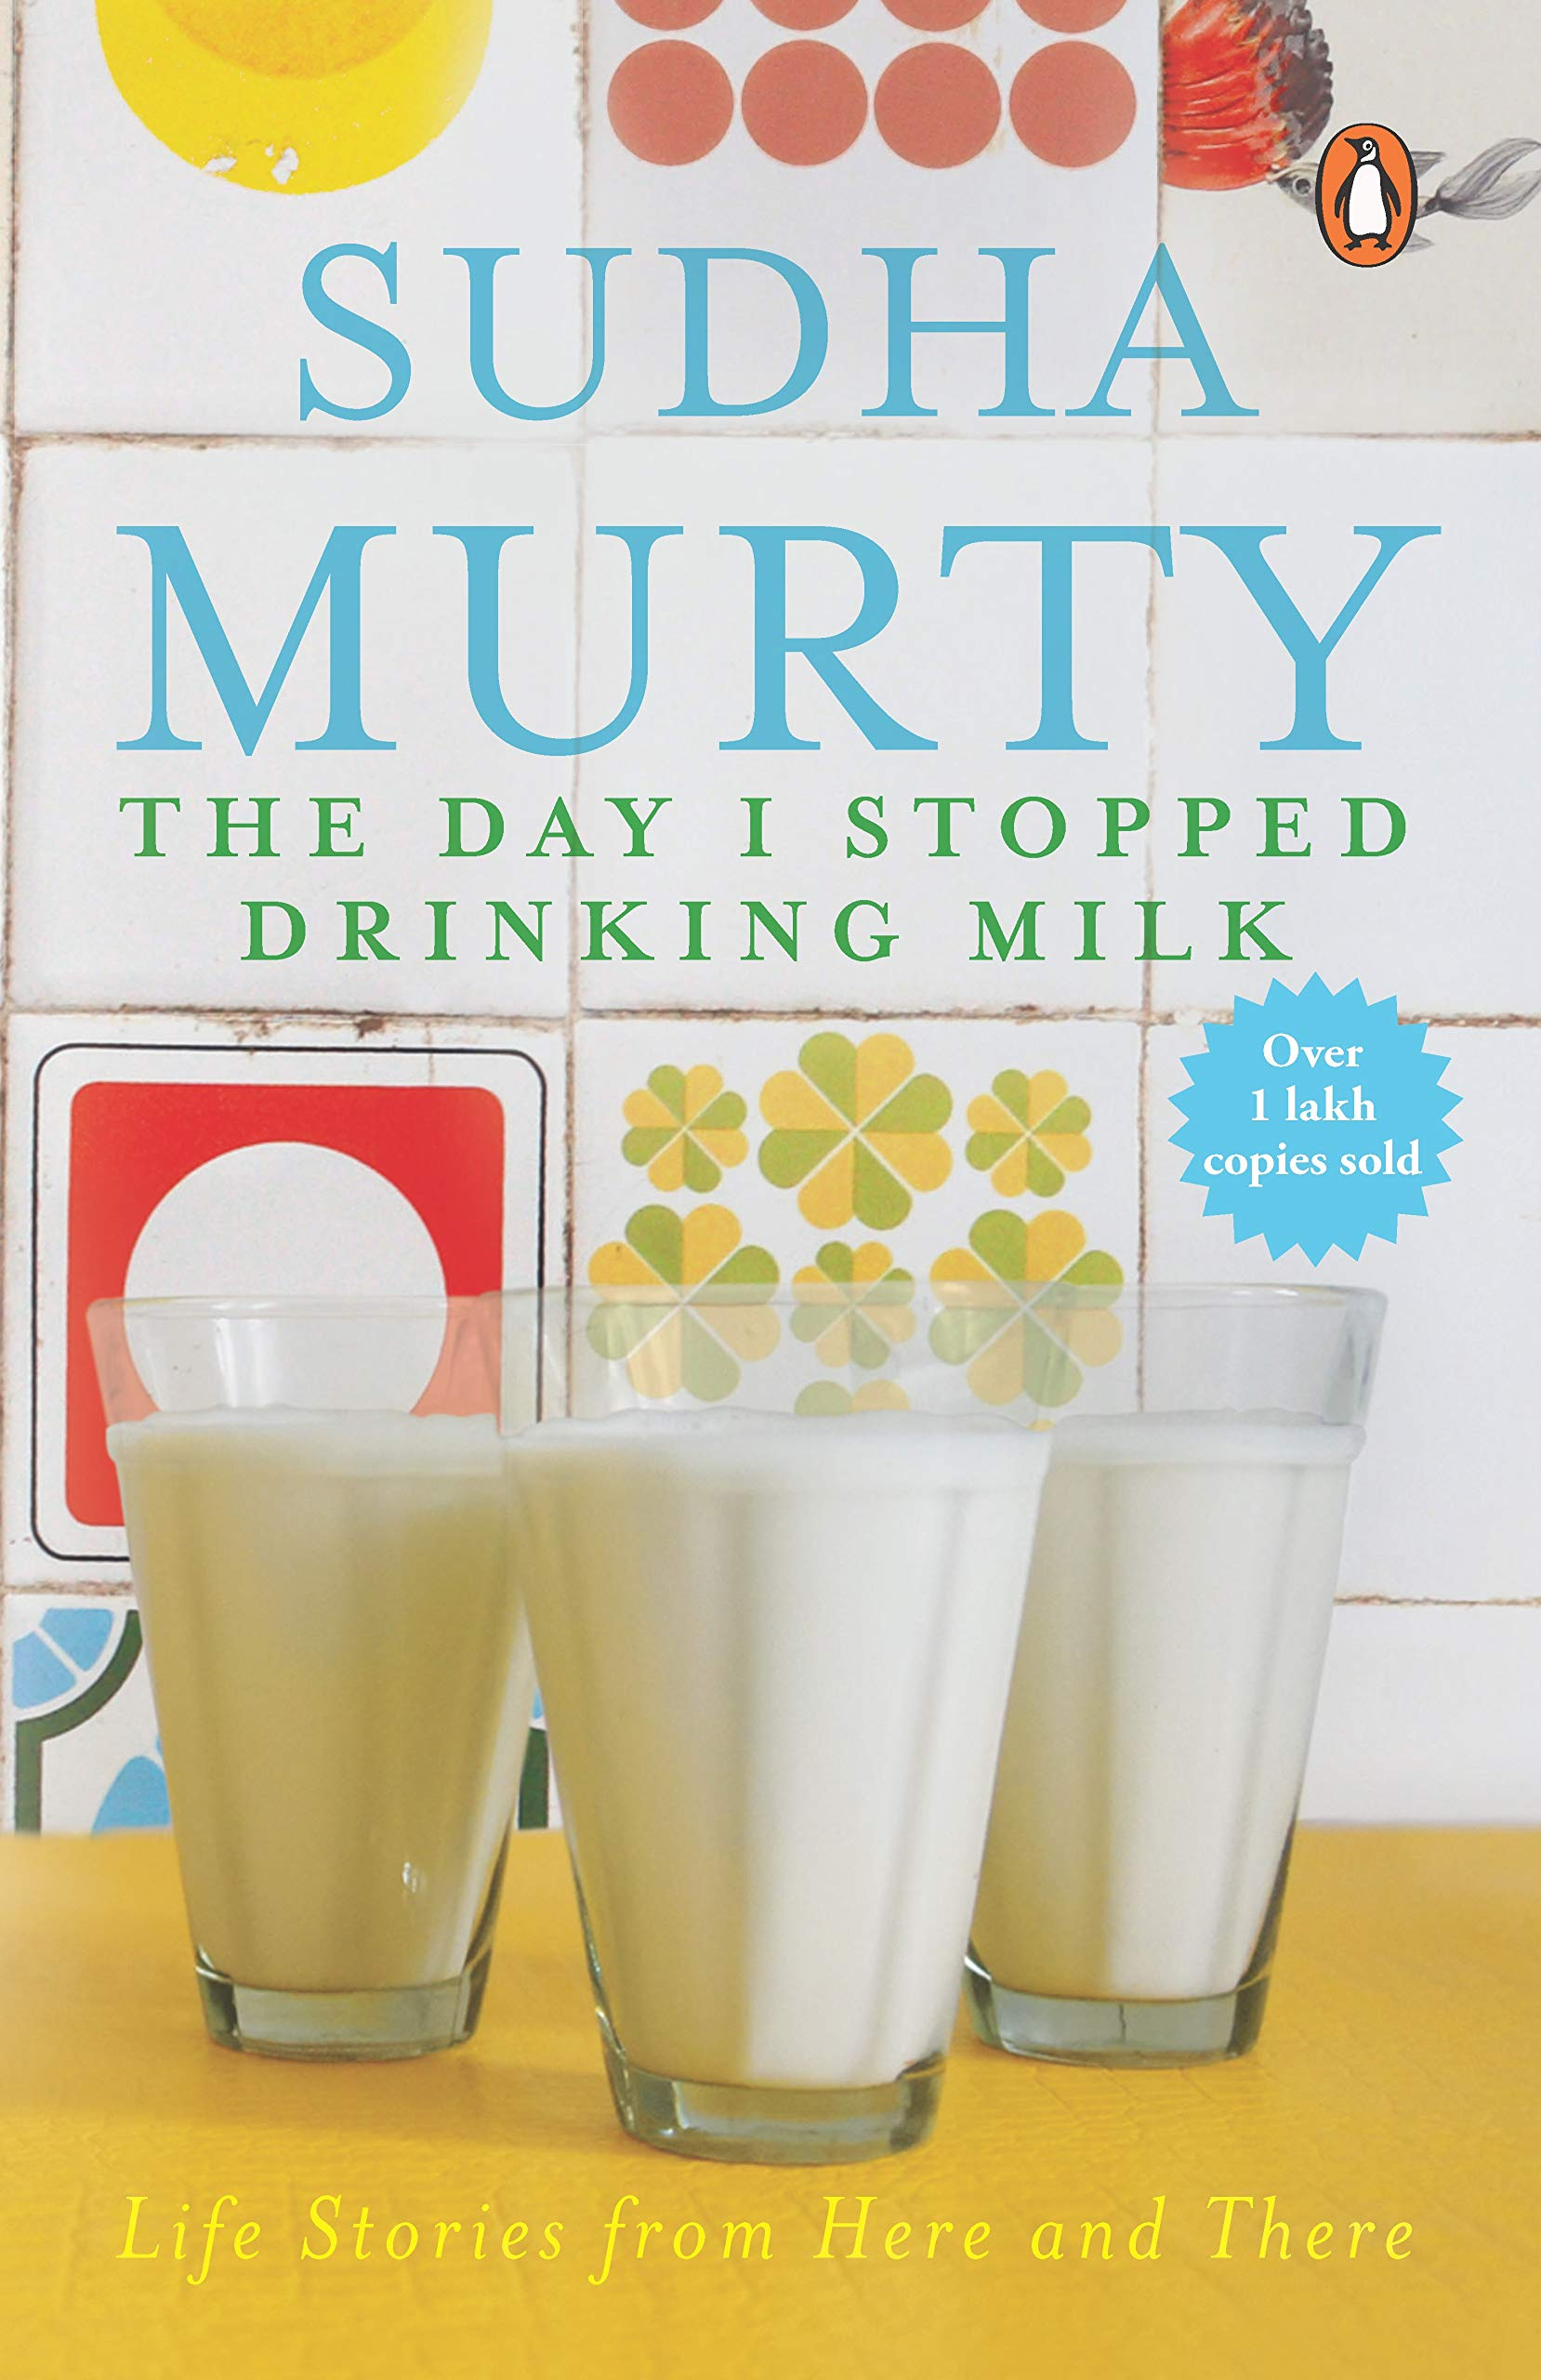 Buy The Day I Stopped Drinking Milk: Life Stories from Here and There Book  Online at Low Prices in India | The Day I Stopped Drinking Milk: Life  Stories from Here and